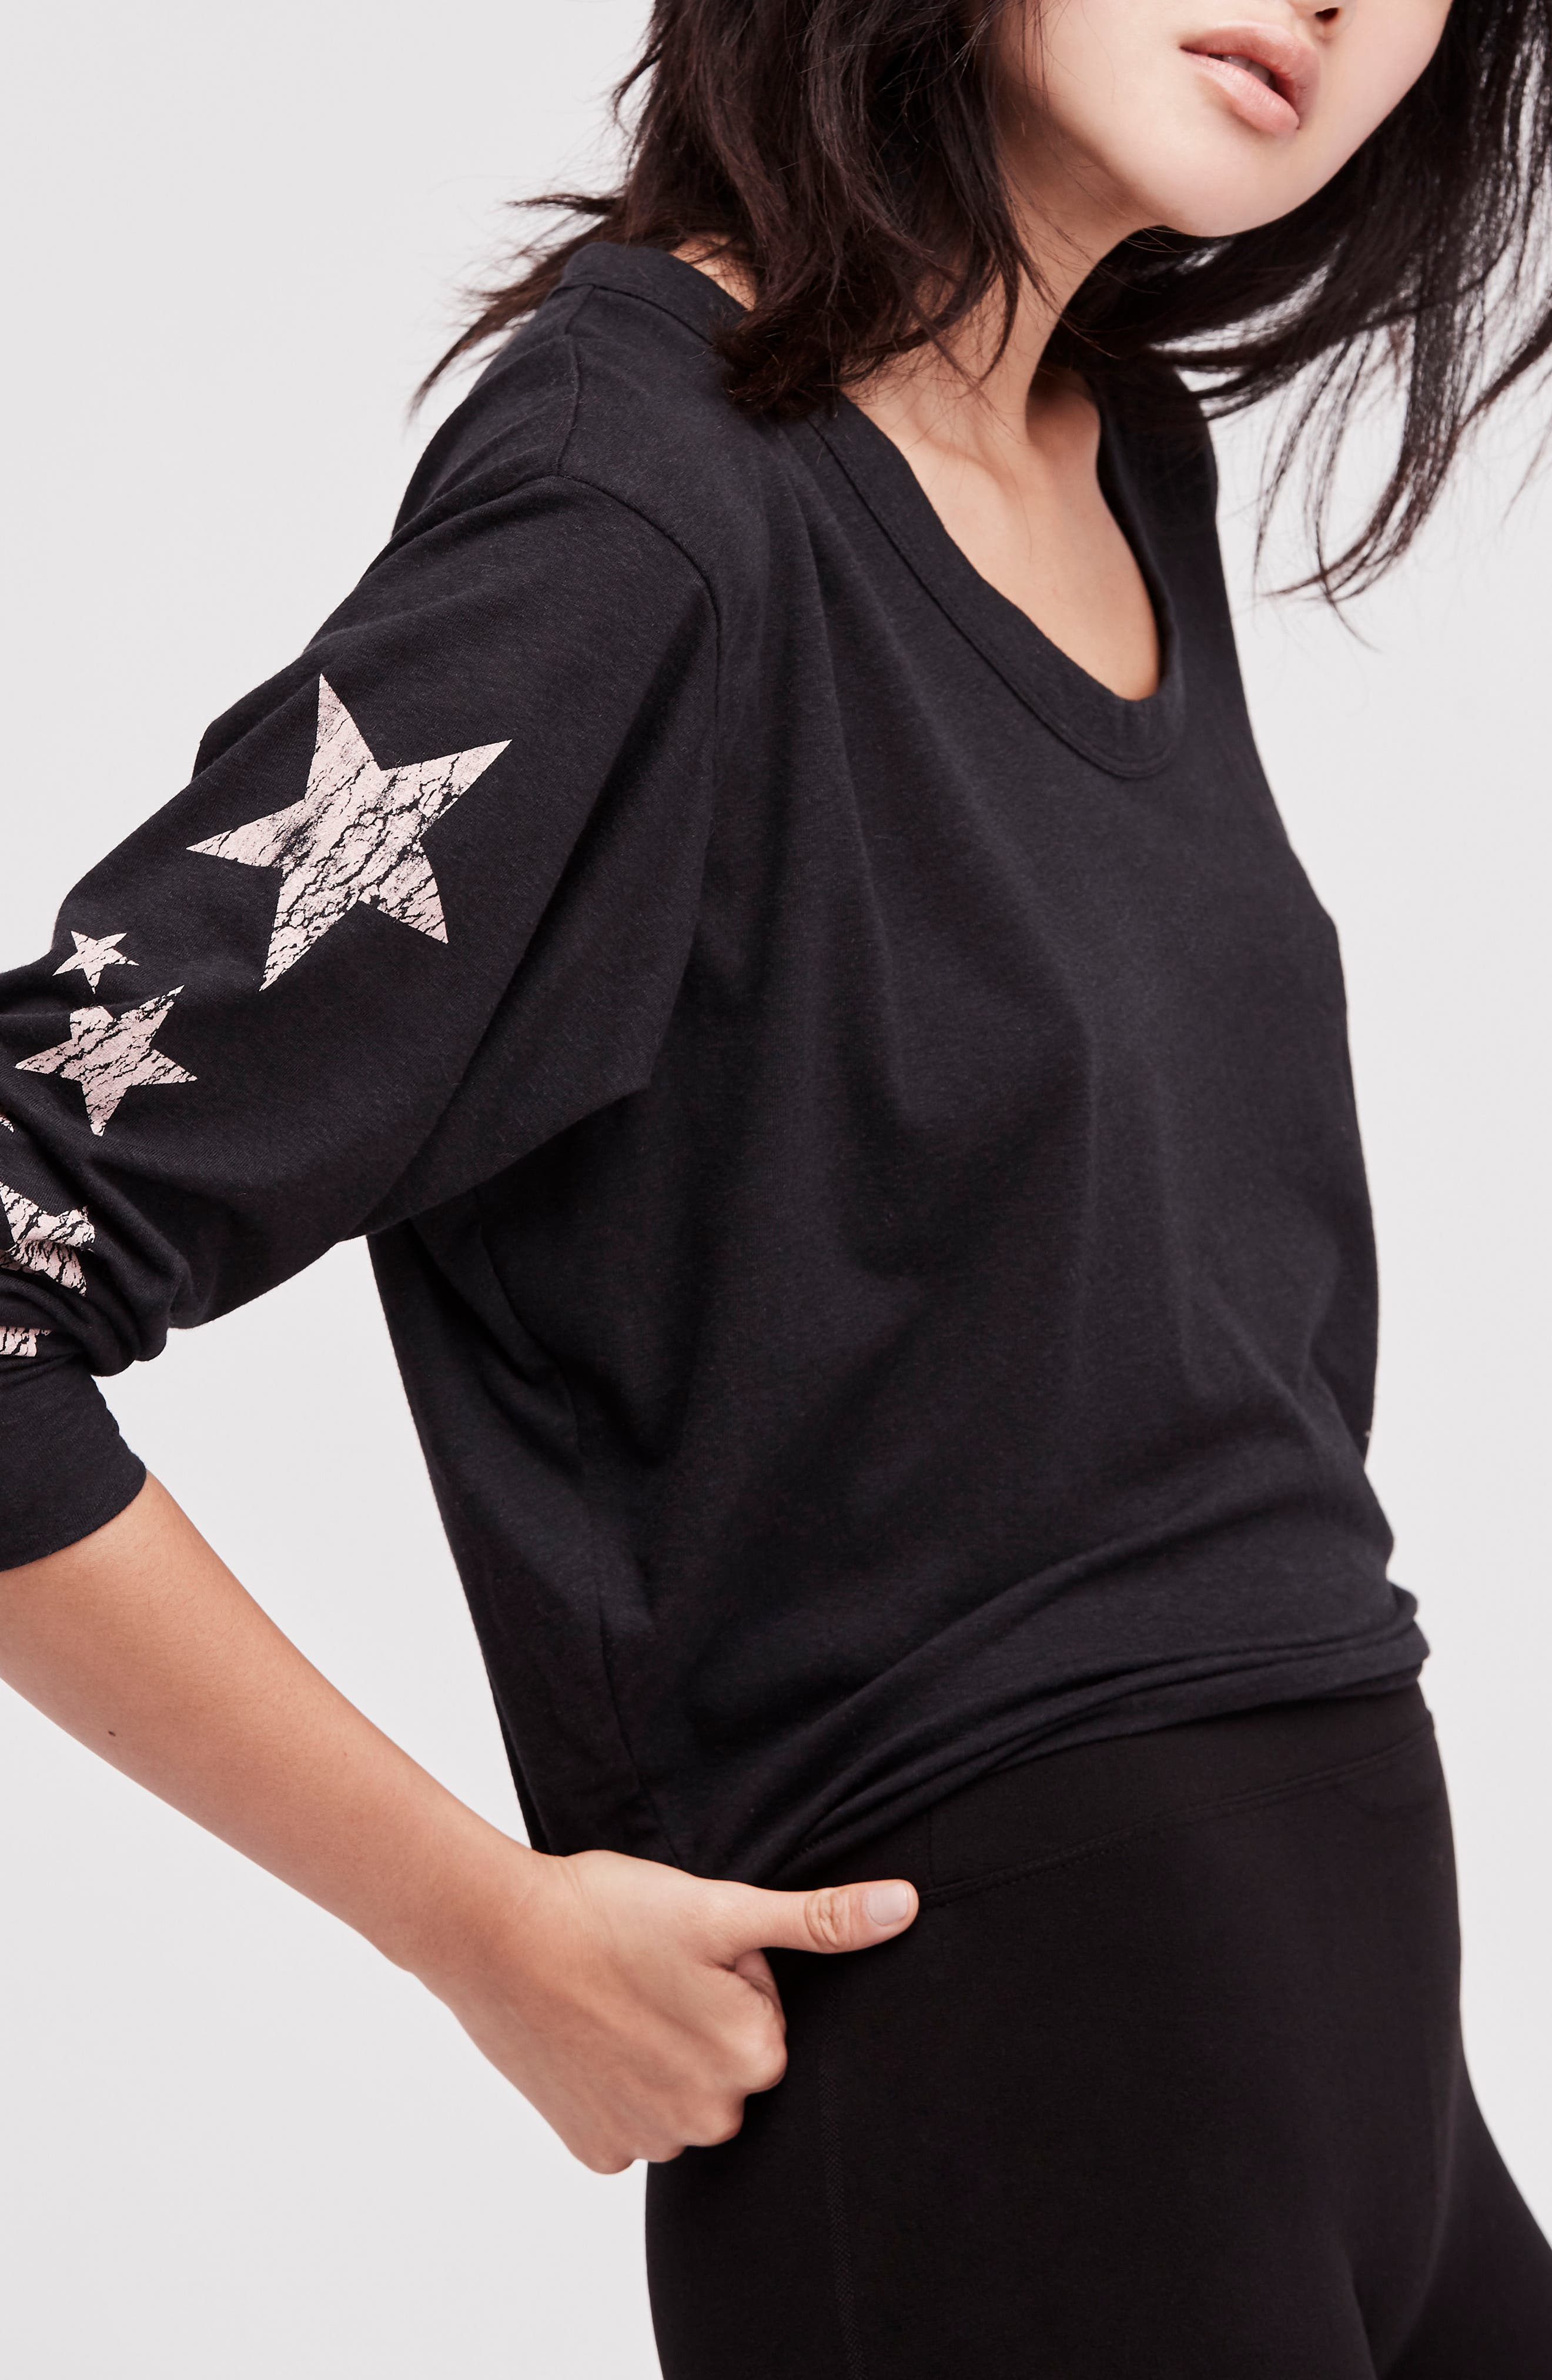 Free People Melrose Star Graphic Top,                             Alternate thumbnail 7, color,                             BLACK